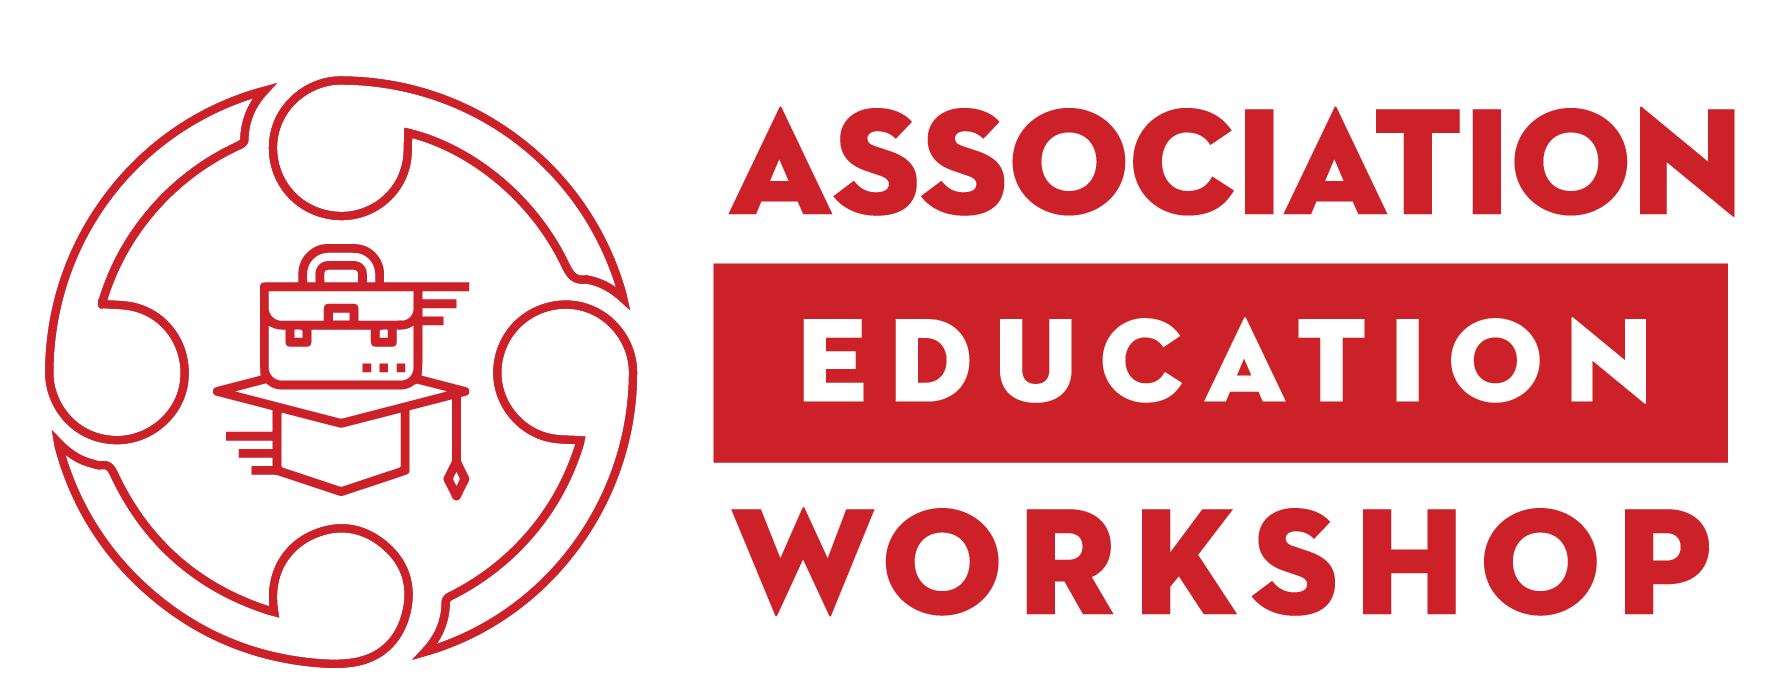 Association Education Workshop - 2019